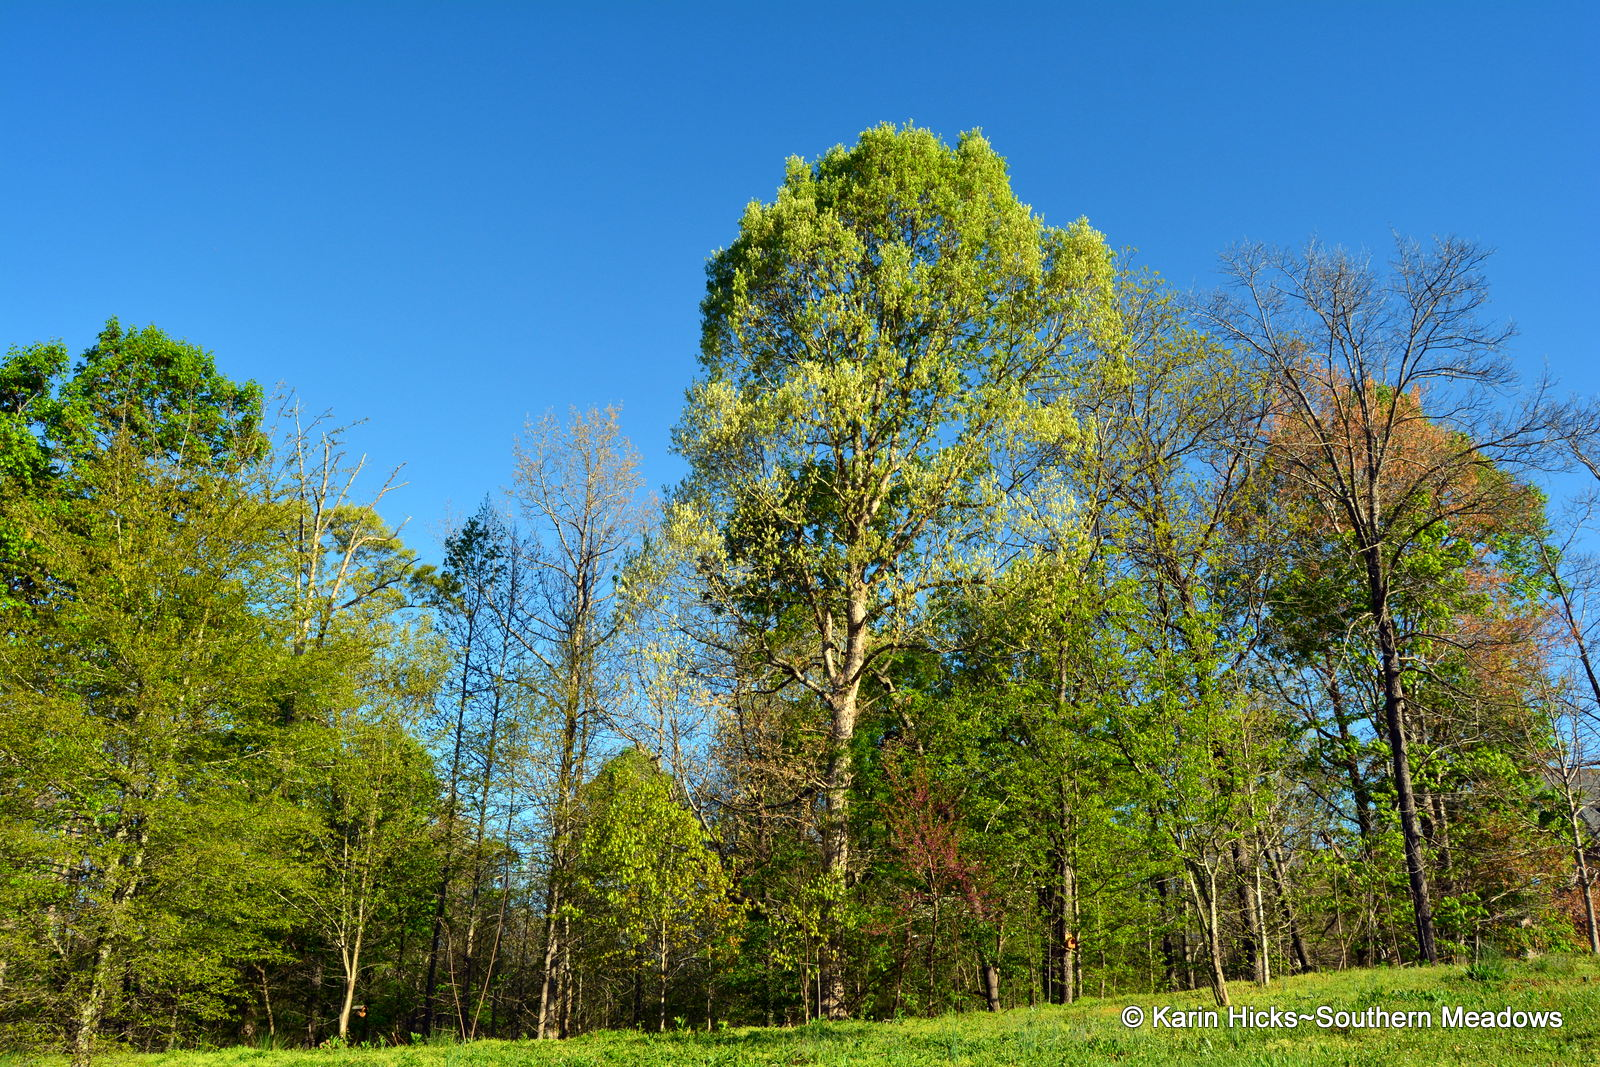 Southern Meadows: The Big Leaf Out. It\'s All About the Trees